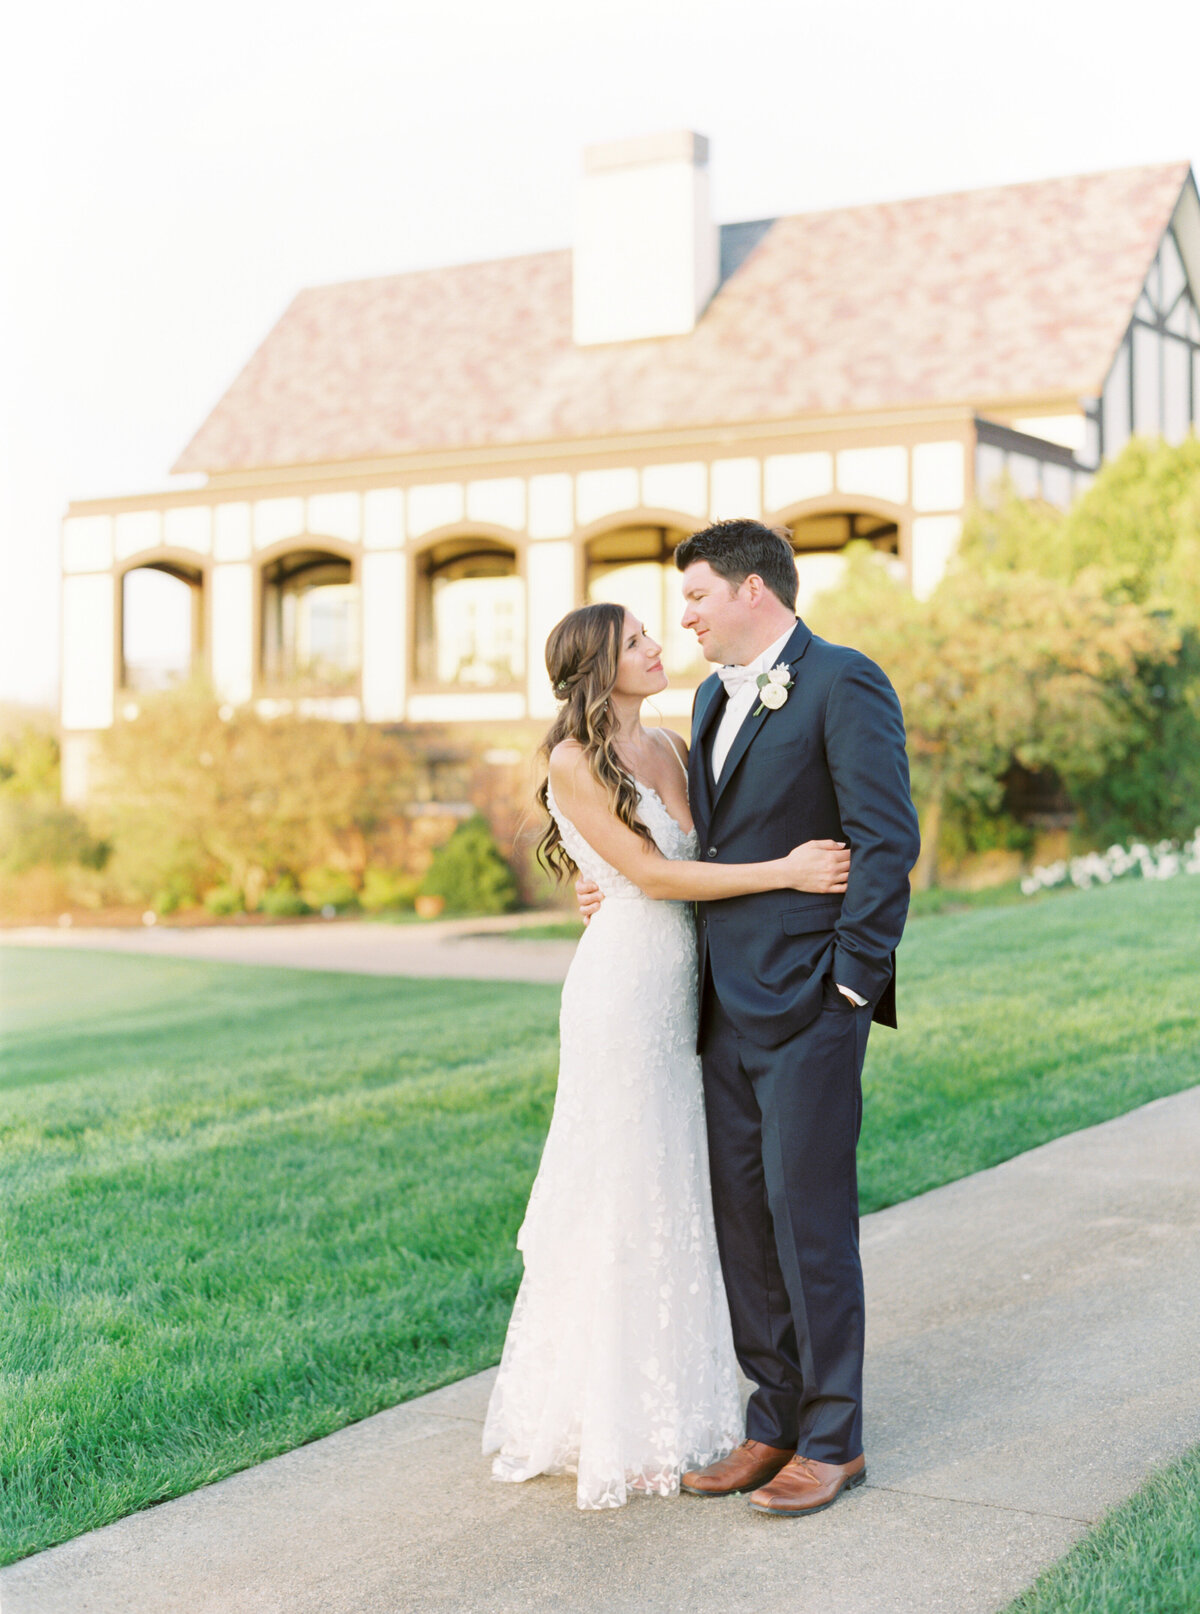 TiffaneyChildsPhotography-ChicagoWeddingPhotographer-Chloe+Jon-HinsdaleCountryClubWedding-BridalPortraits-133